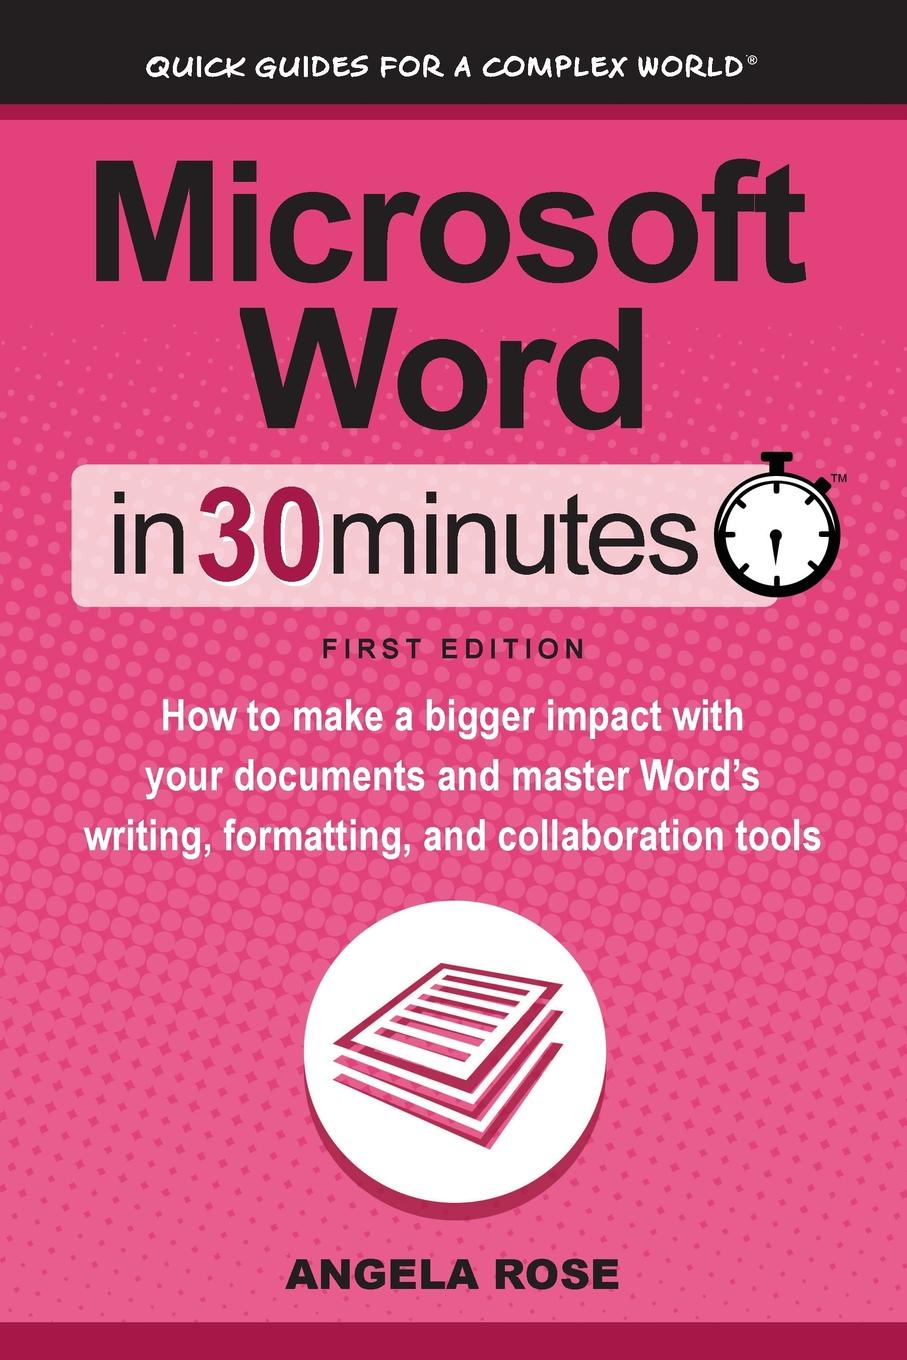 Angela Rose Microsoft Word In 30 Minutes. How to make a bigger impact with your documents and master Word.s writing, formatting, and collaboration tools scott doorley make space how to set the stage for creative collaboration